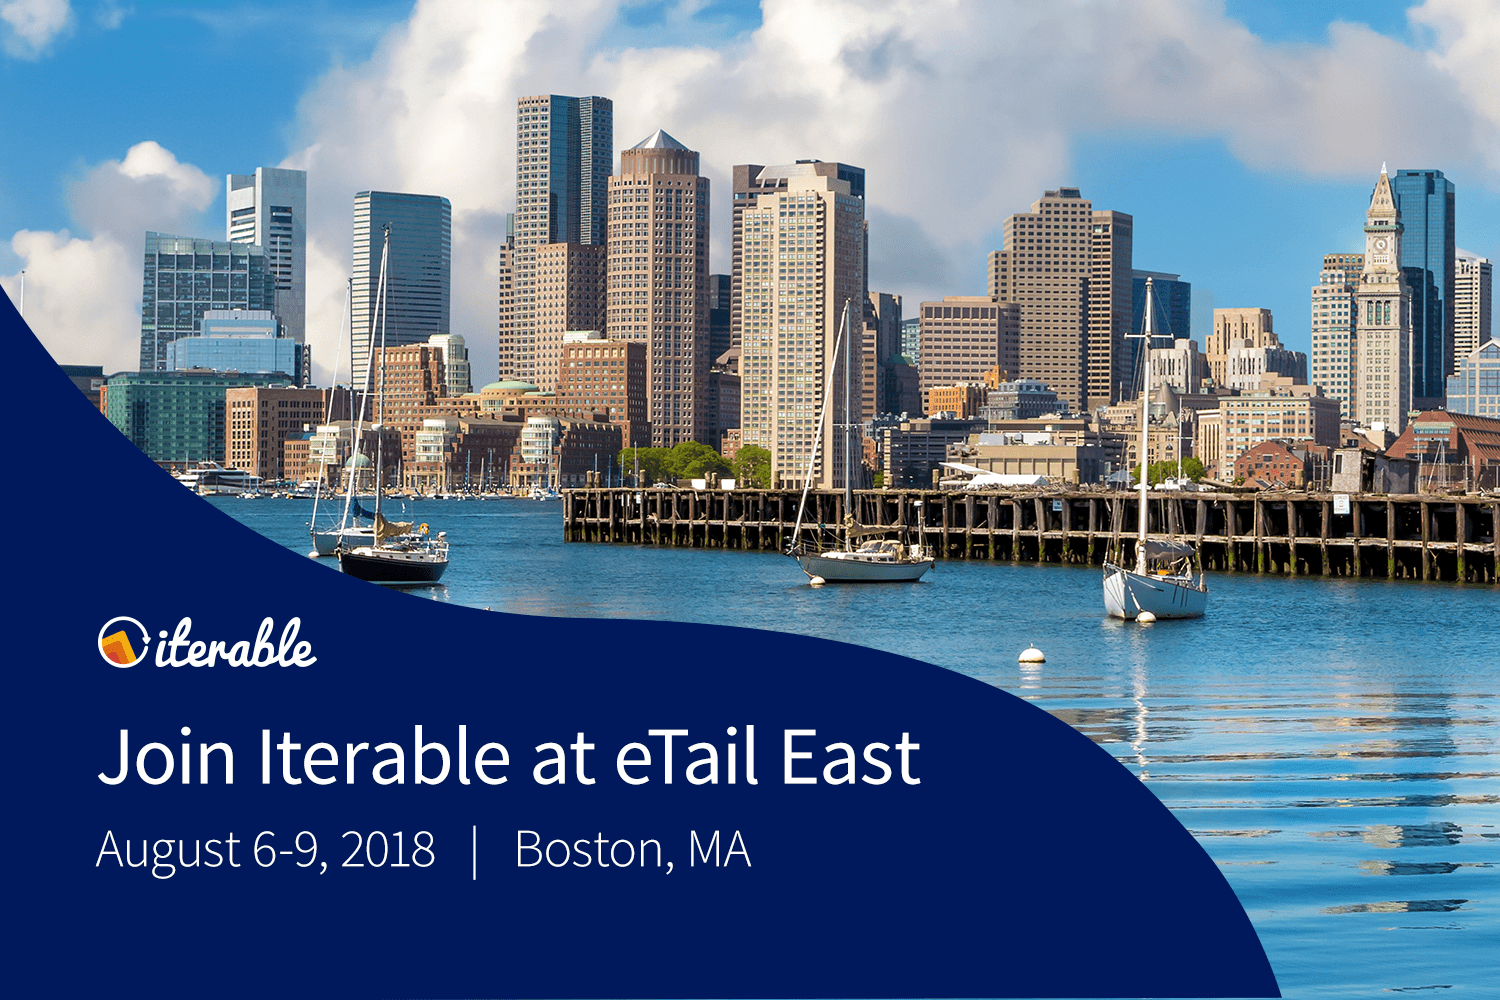 Join Iterable at eTail East, Aug. 6-9, 2018, in Boston